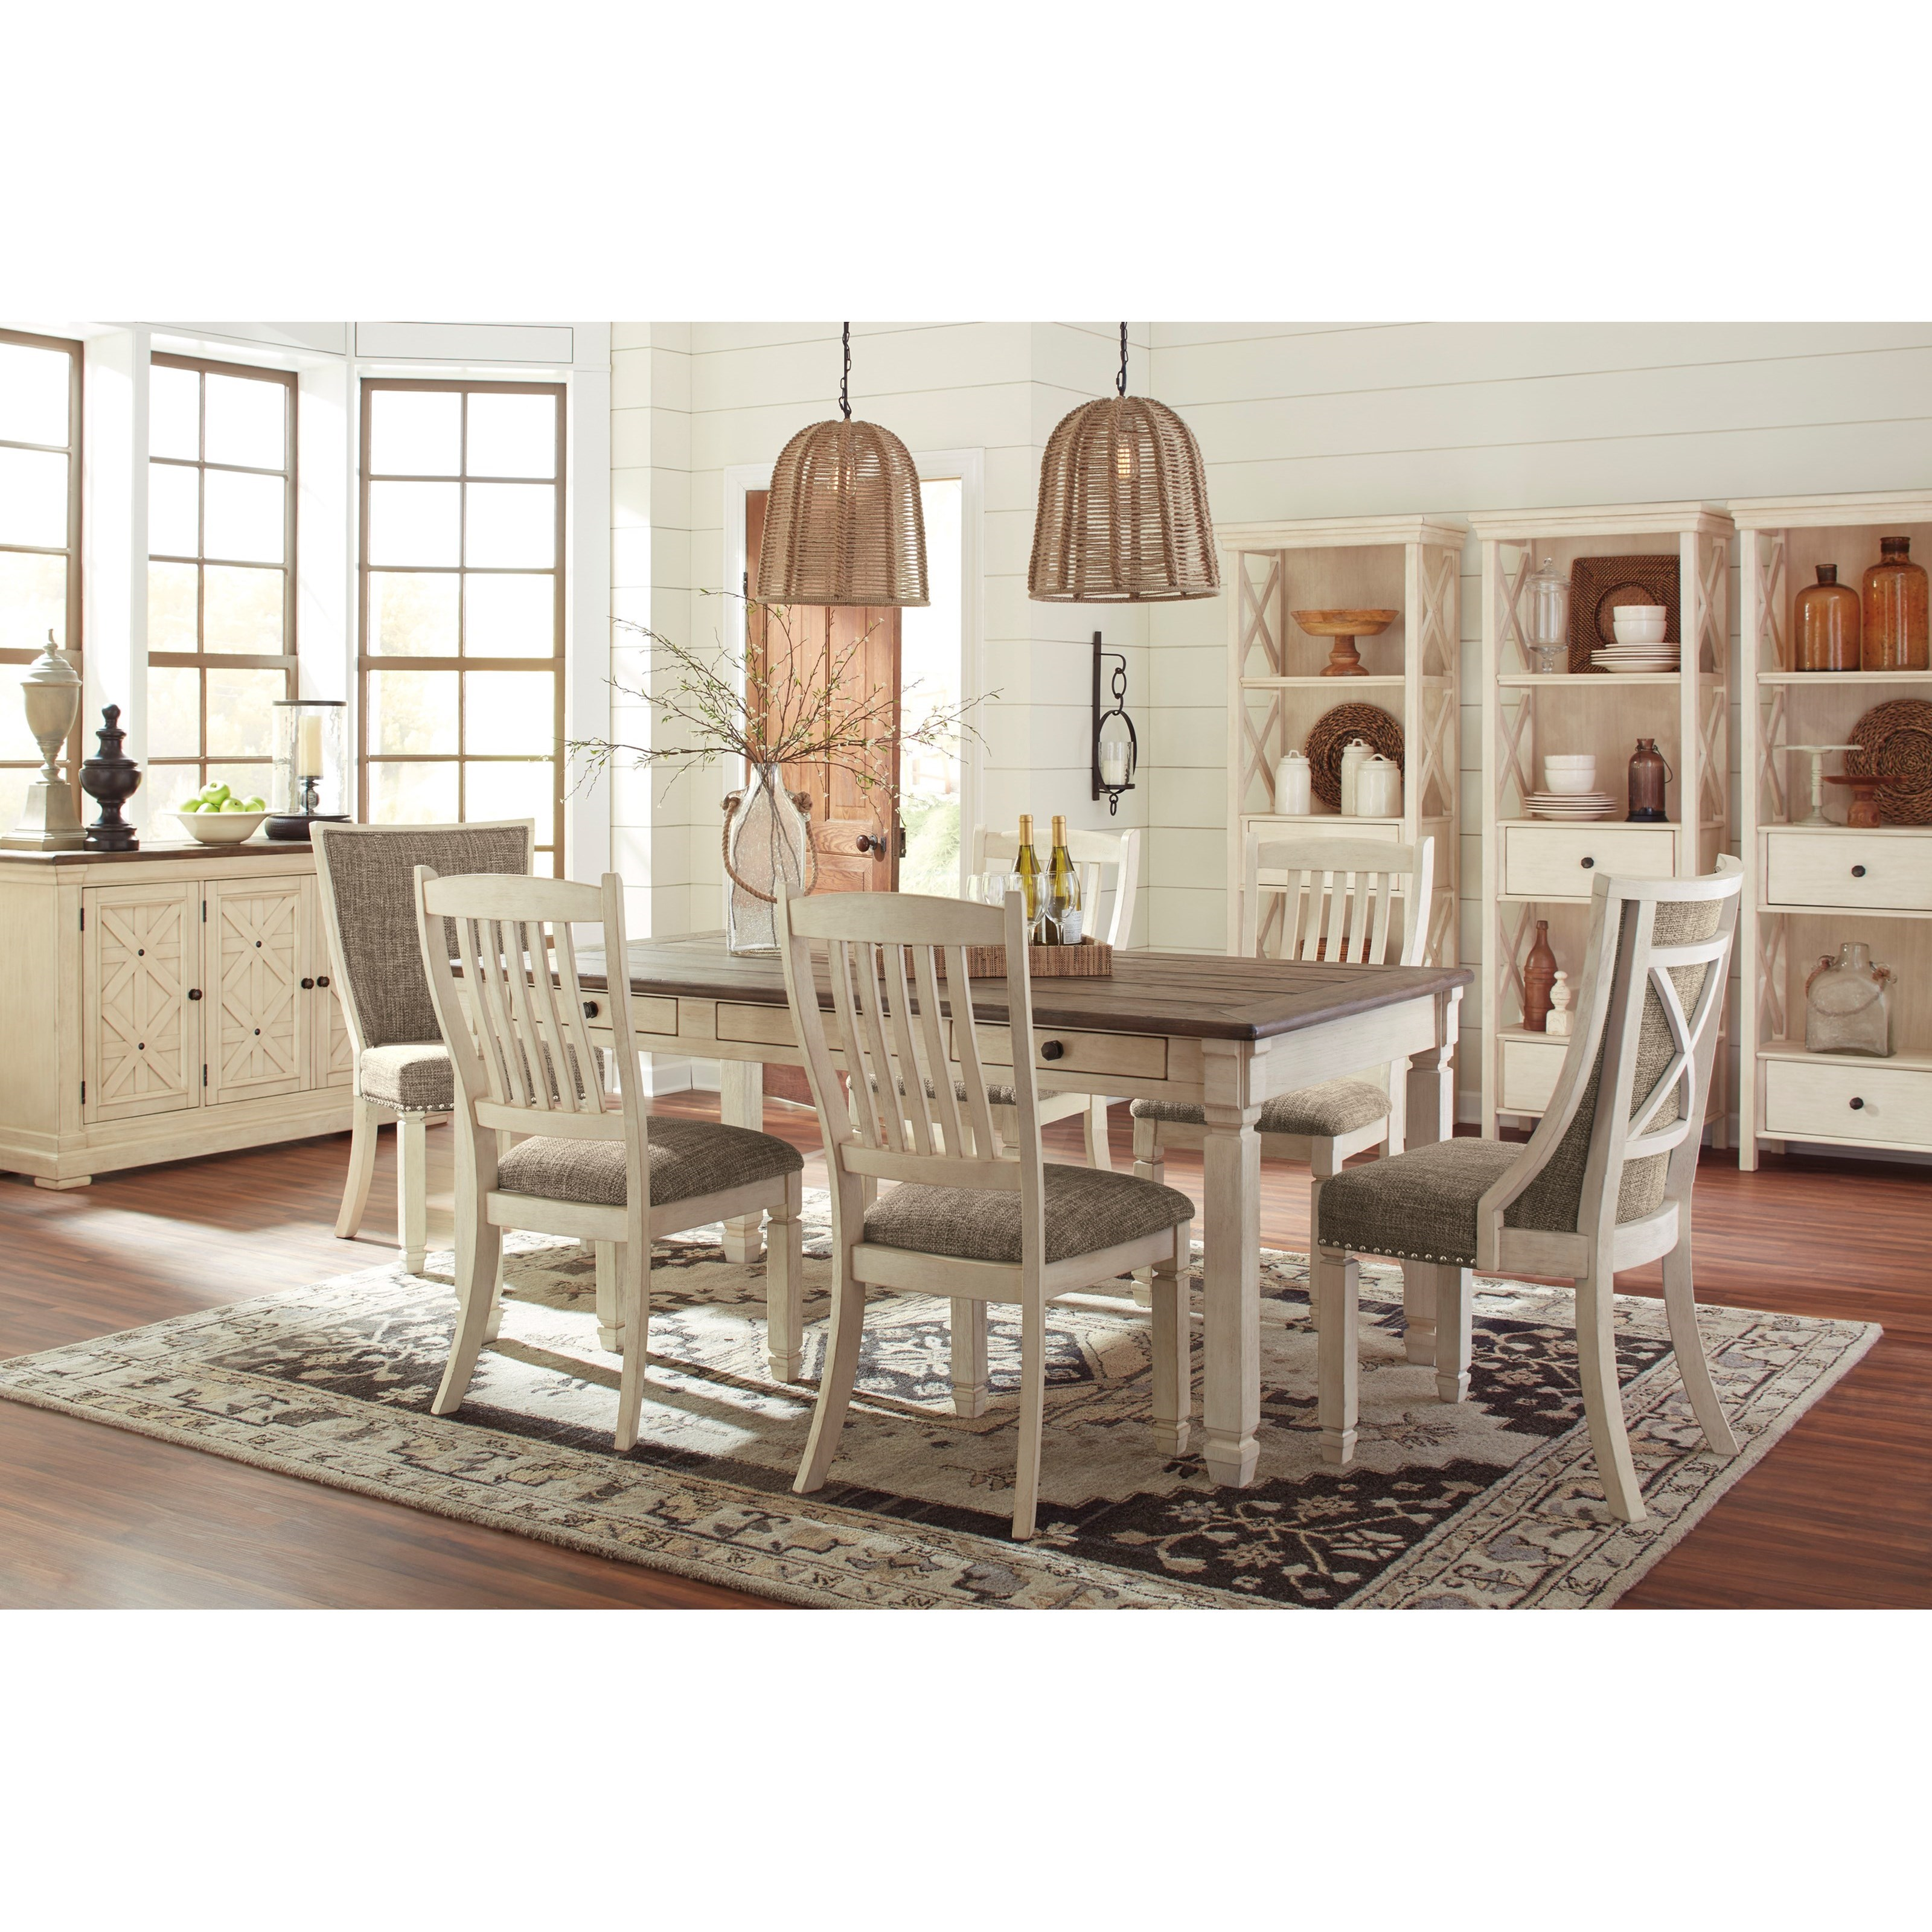 Bolanburg Formal Dining Room Group by Signature Design by Ashley at Household Furniture